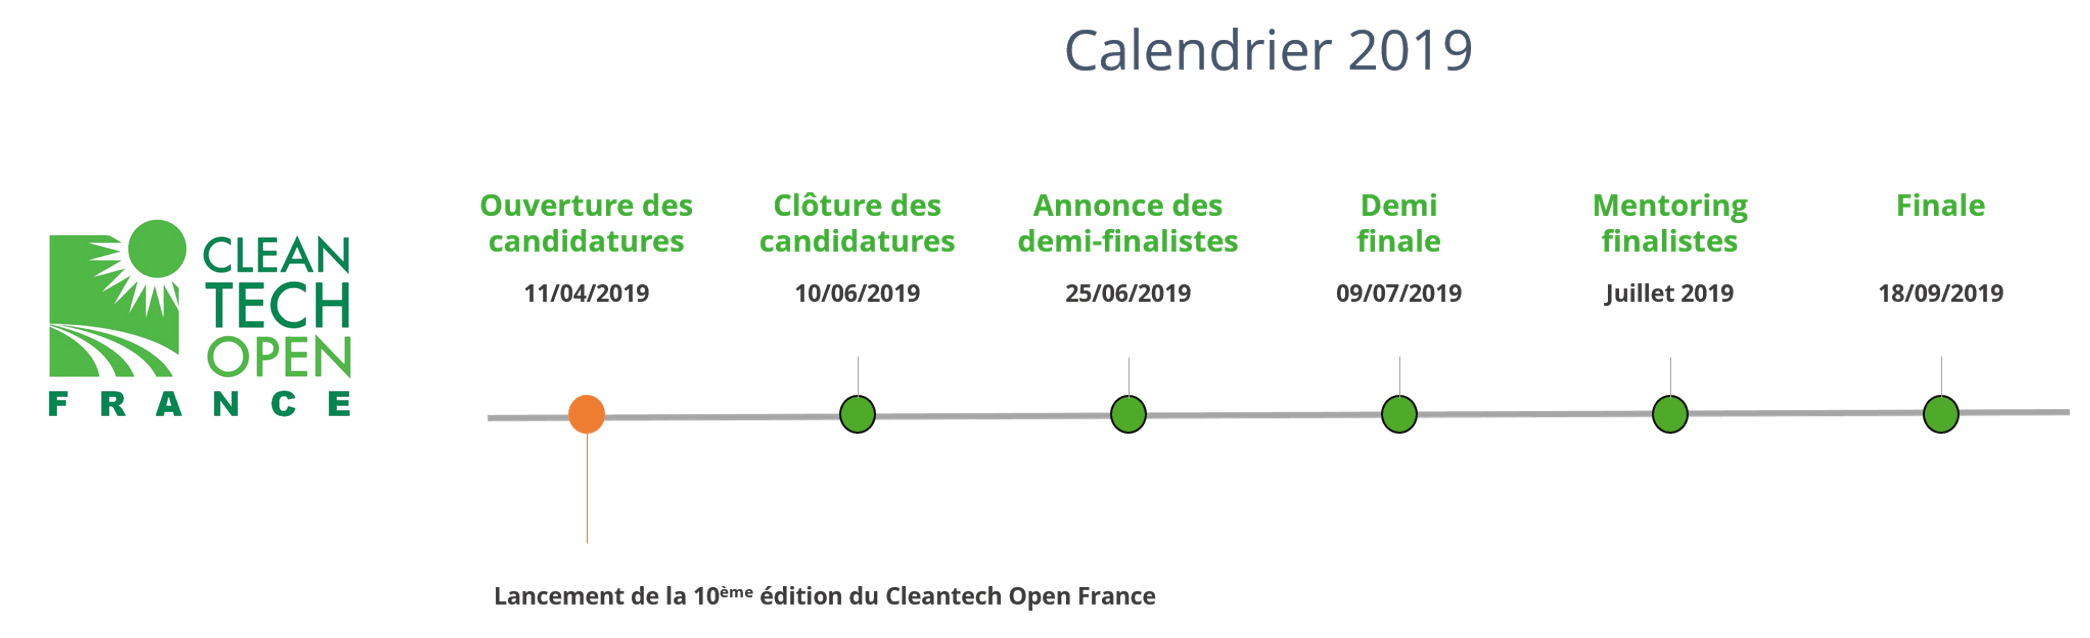 calandrier cleantech open france2